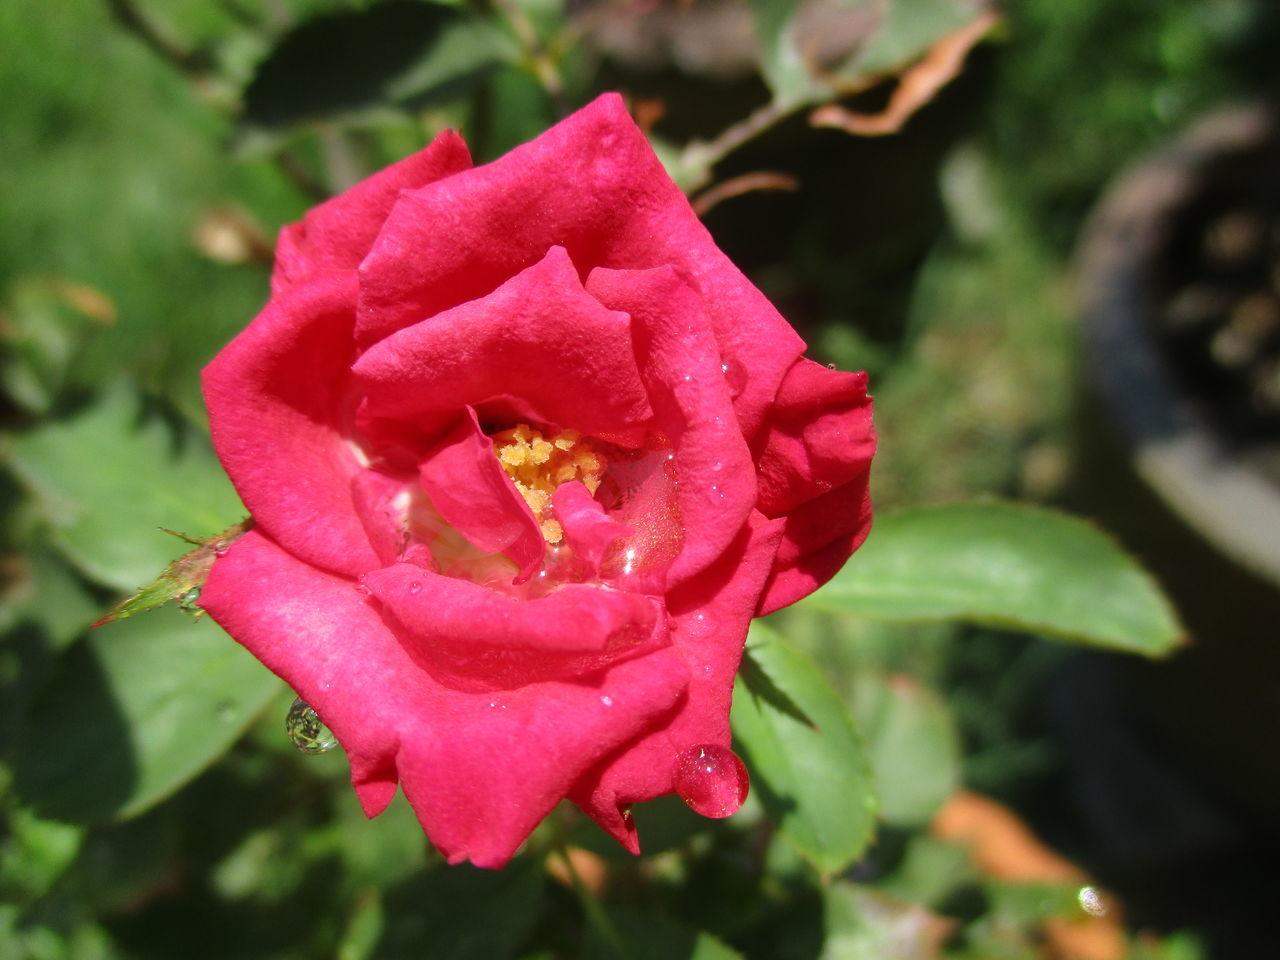 flower, petal, beauty in nature, nature, growth, fragility, flower head, rose - flower, freshness, drop, plant, wet, no people, outdoors, day, pink color, blooming, focus on foreground, close-up, water